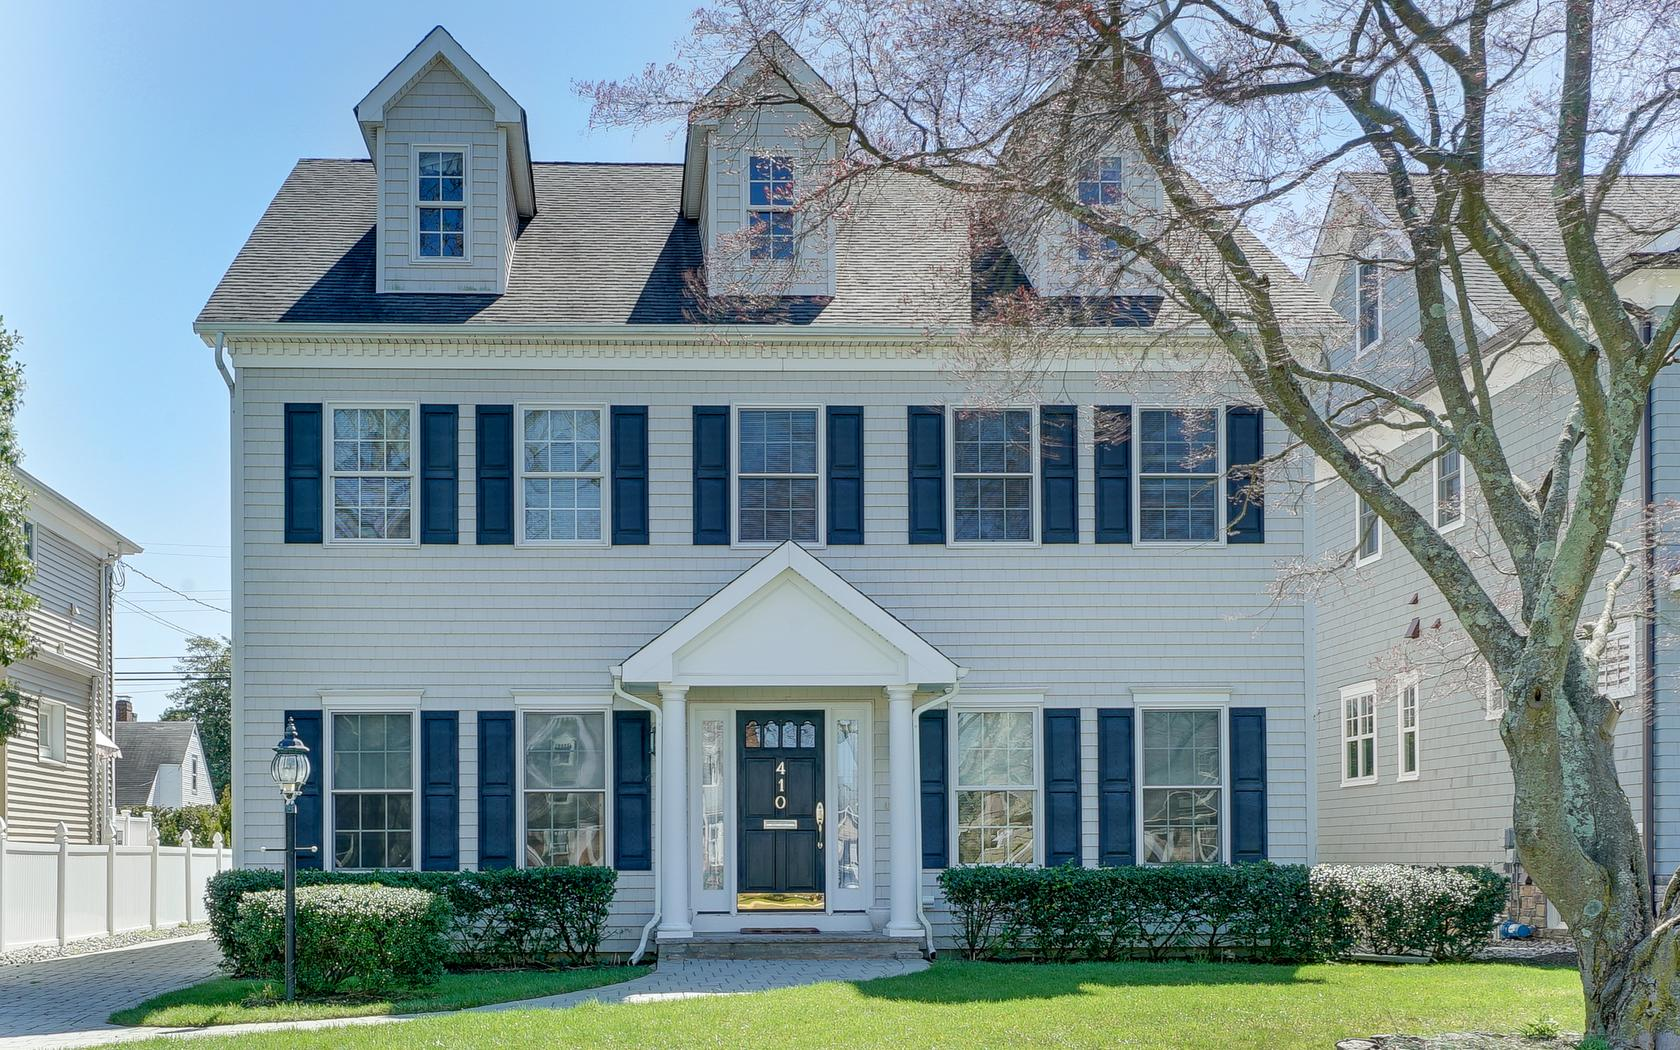 단독 가정 주택 용 매매 에 Beautiful Classic Colonial in Sea Girt! 410 Philadelphia Boulevard Sea Girt, 뉴저지, 08750 미국